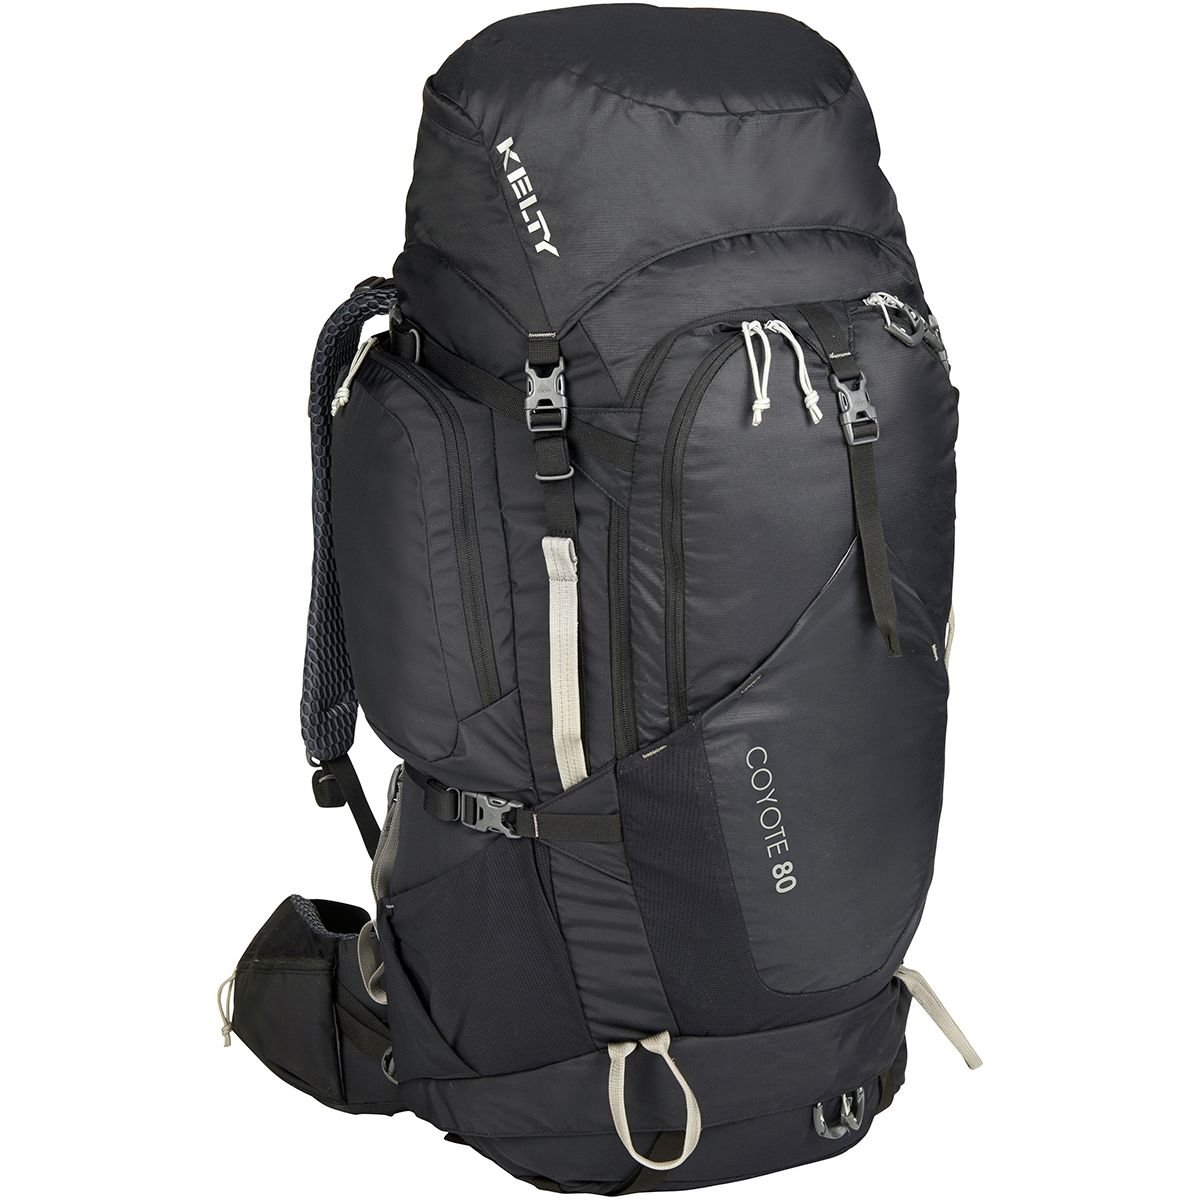 Kelty Coyote 80 review